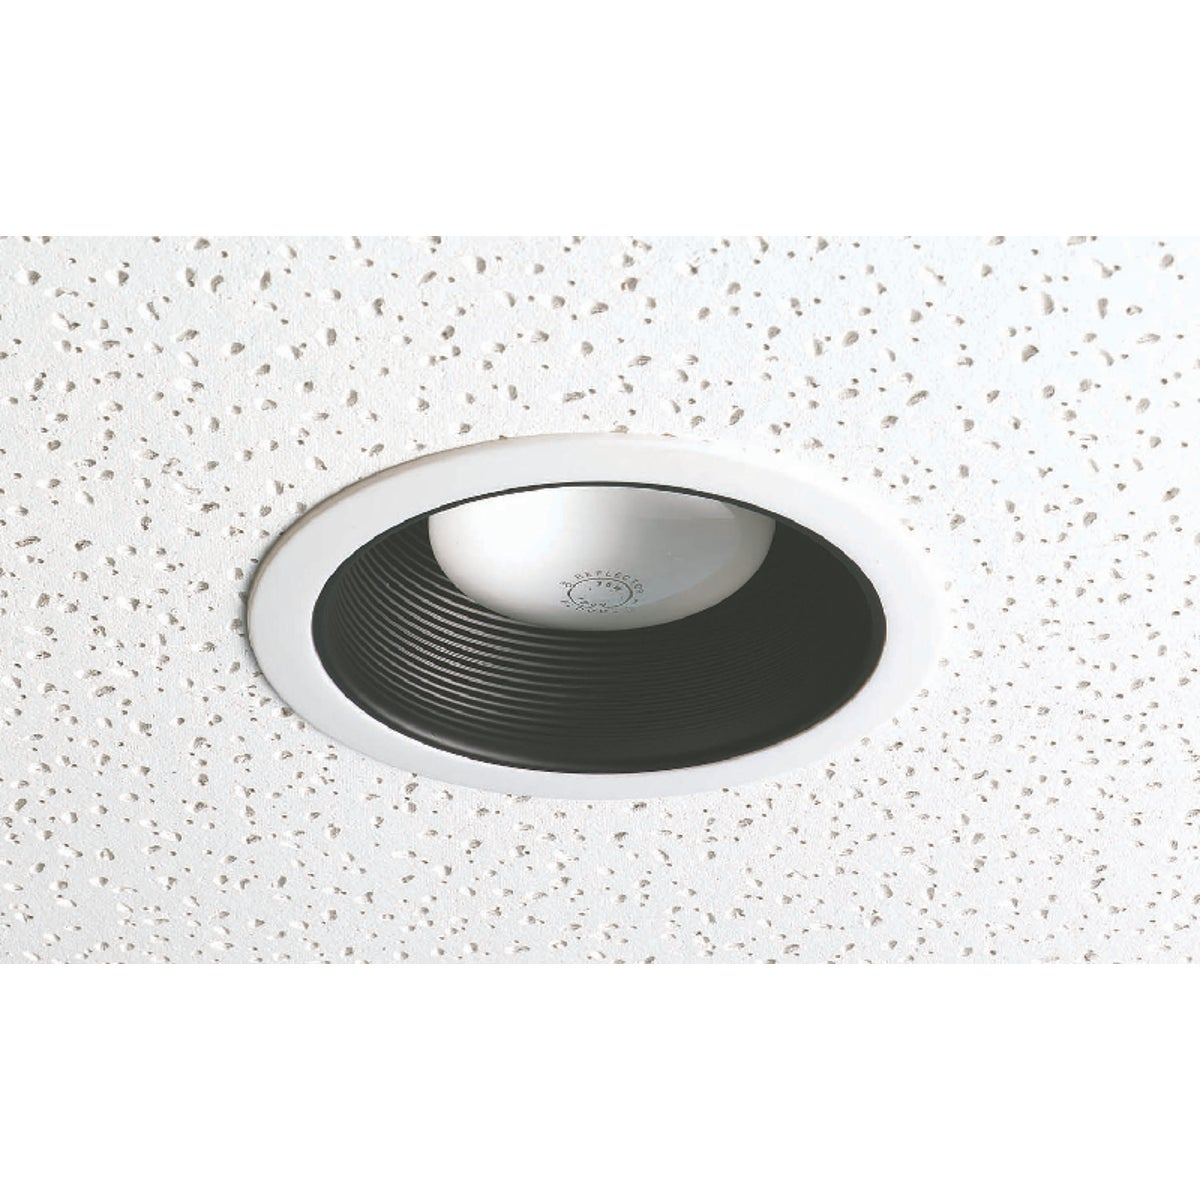 BLK RECESS FIXTURE TRIM